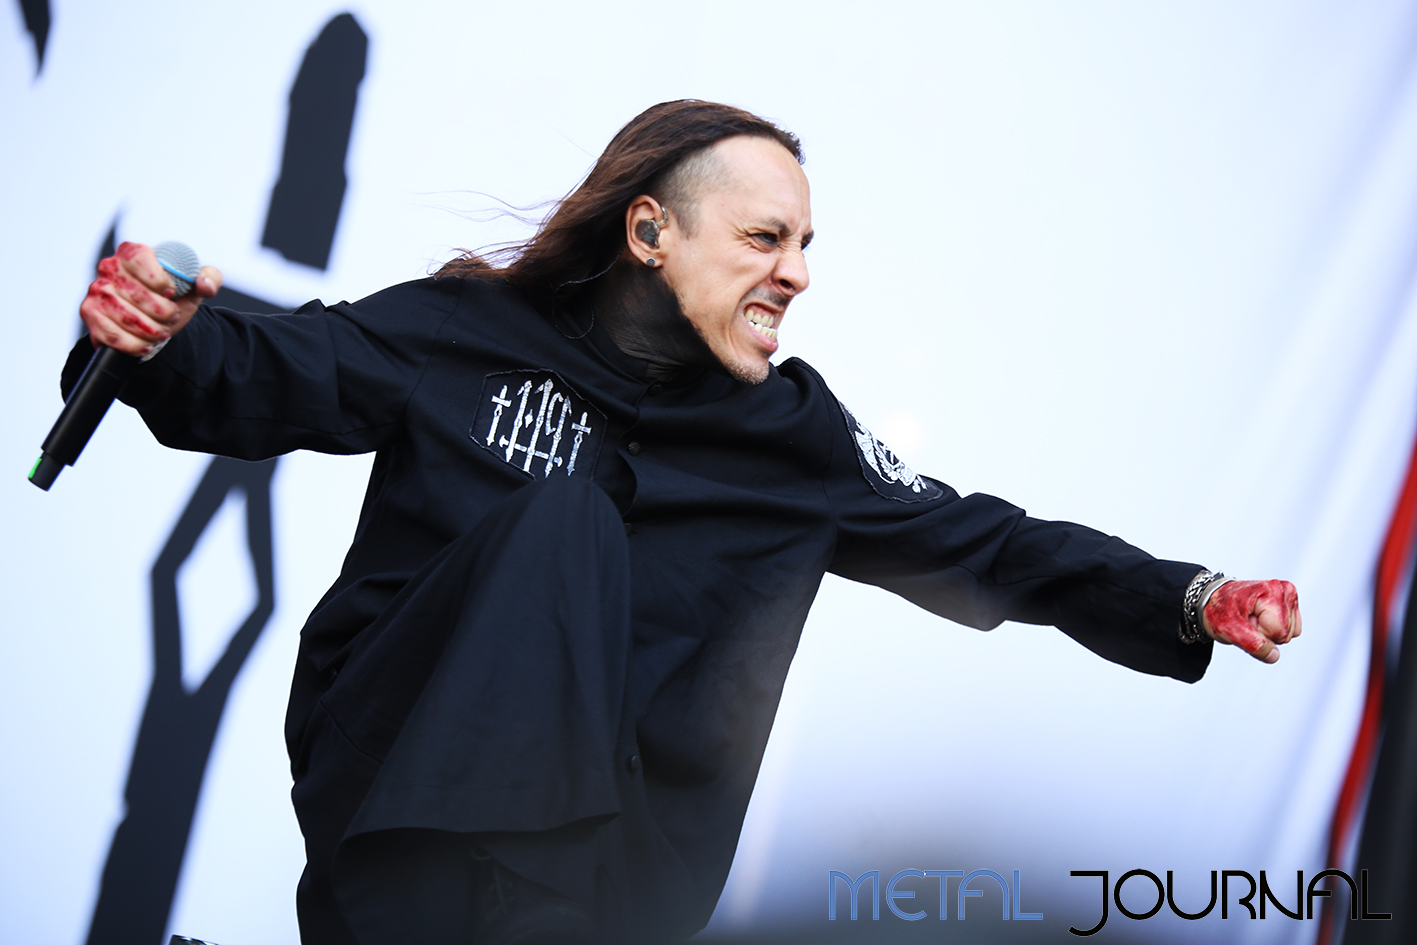 lacuna coil - leyendas del rock 2019 metal journal pic 5